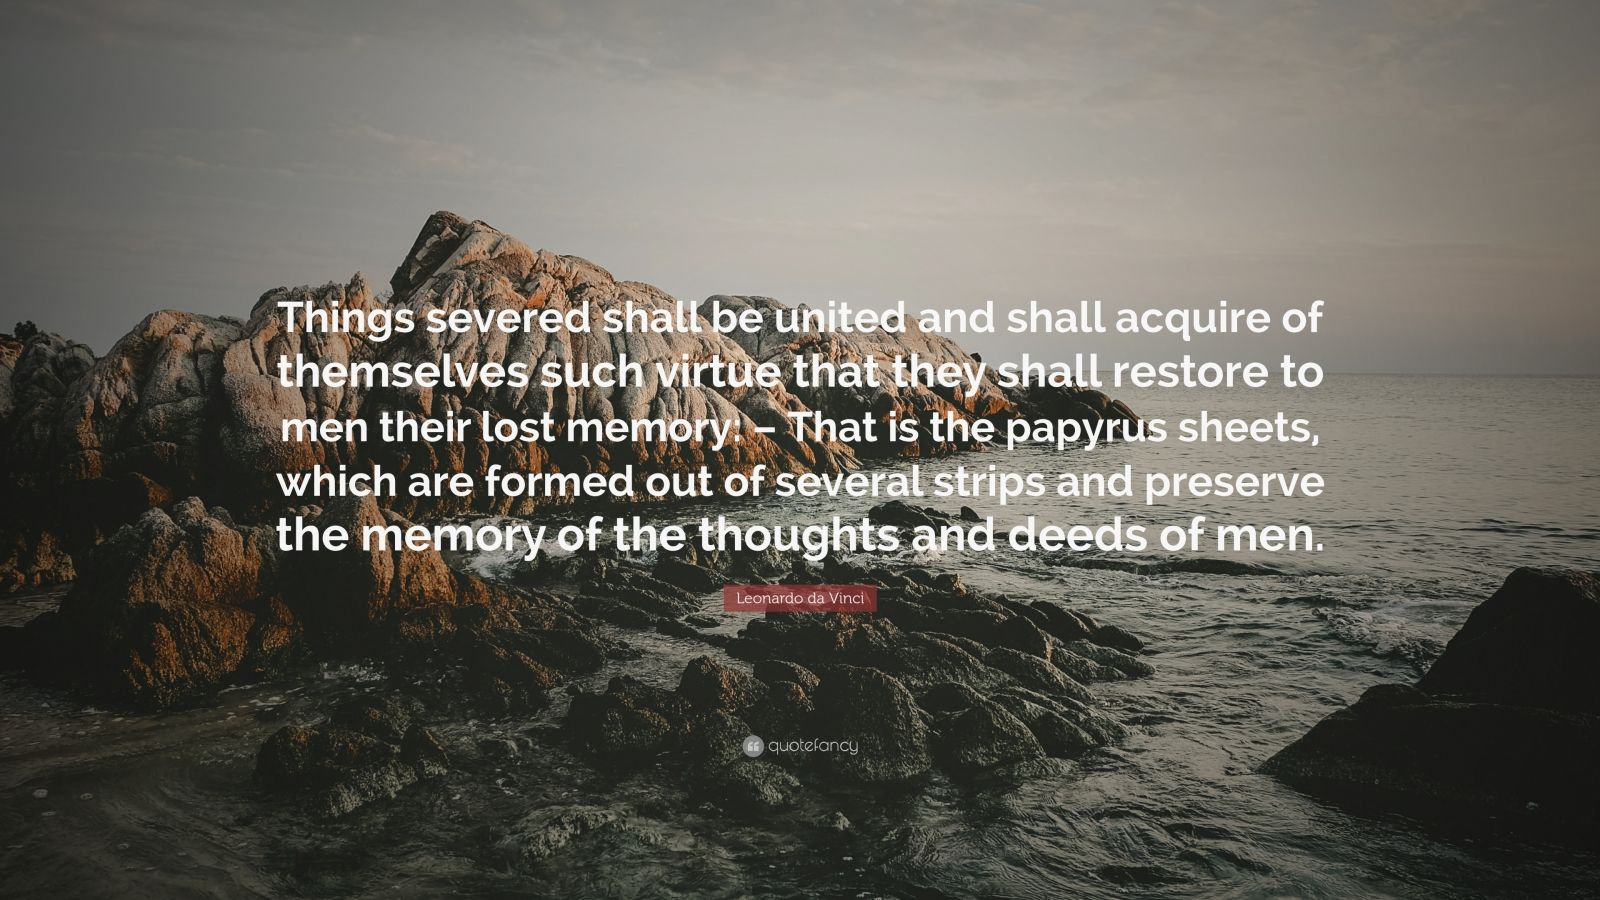 """Leonardo da Vinci Quote: """"Things severed shall be united and shall acquire of themselves such virtue that they shall restore to men their lost memory: – That is the papyrus sheets, which are formed out of several strips and preserve the memory of the thoughts and deeds of men."""""""